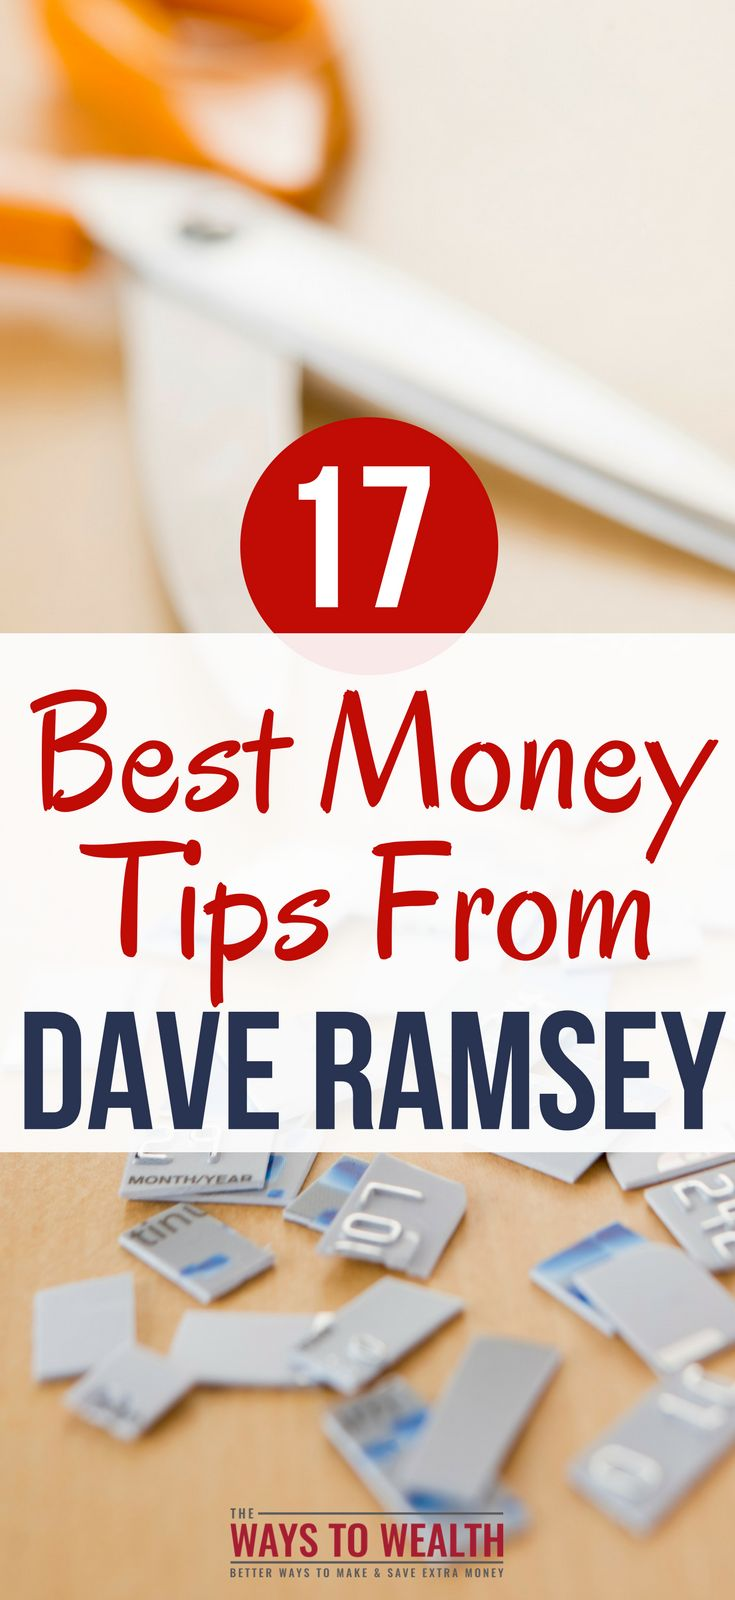 Save money and make money. Dave Ramsey tips and advice